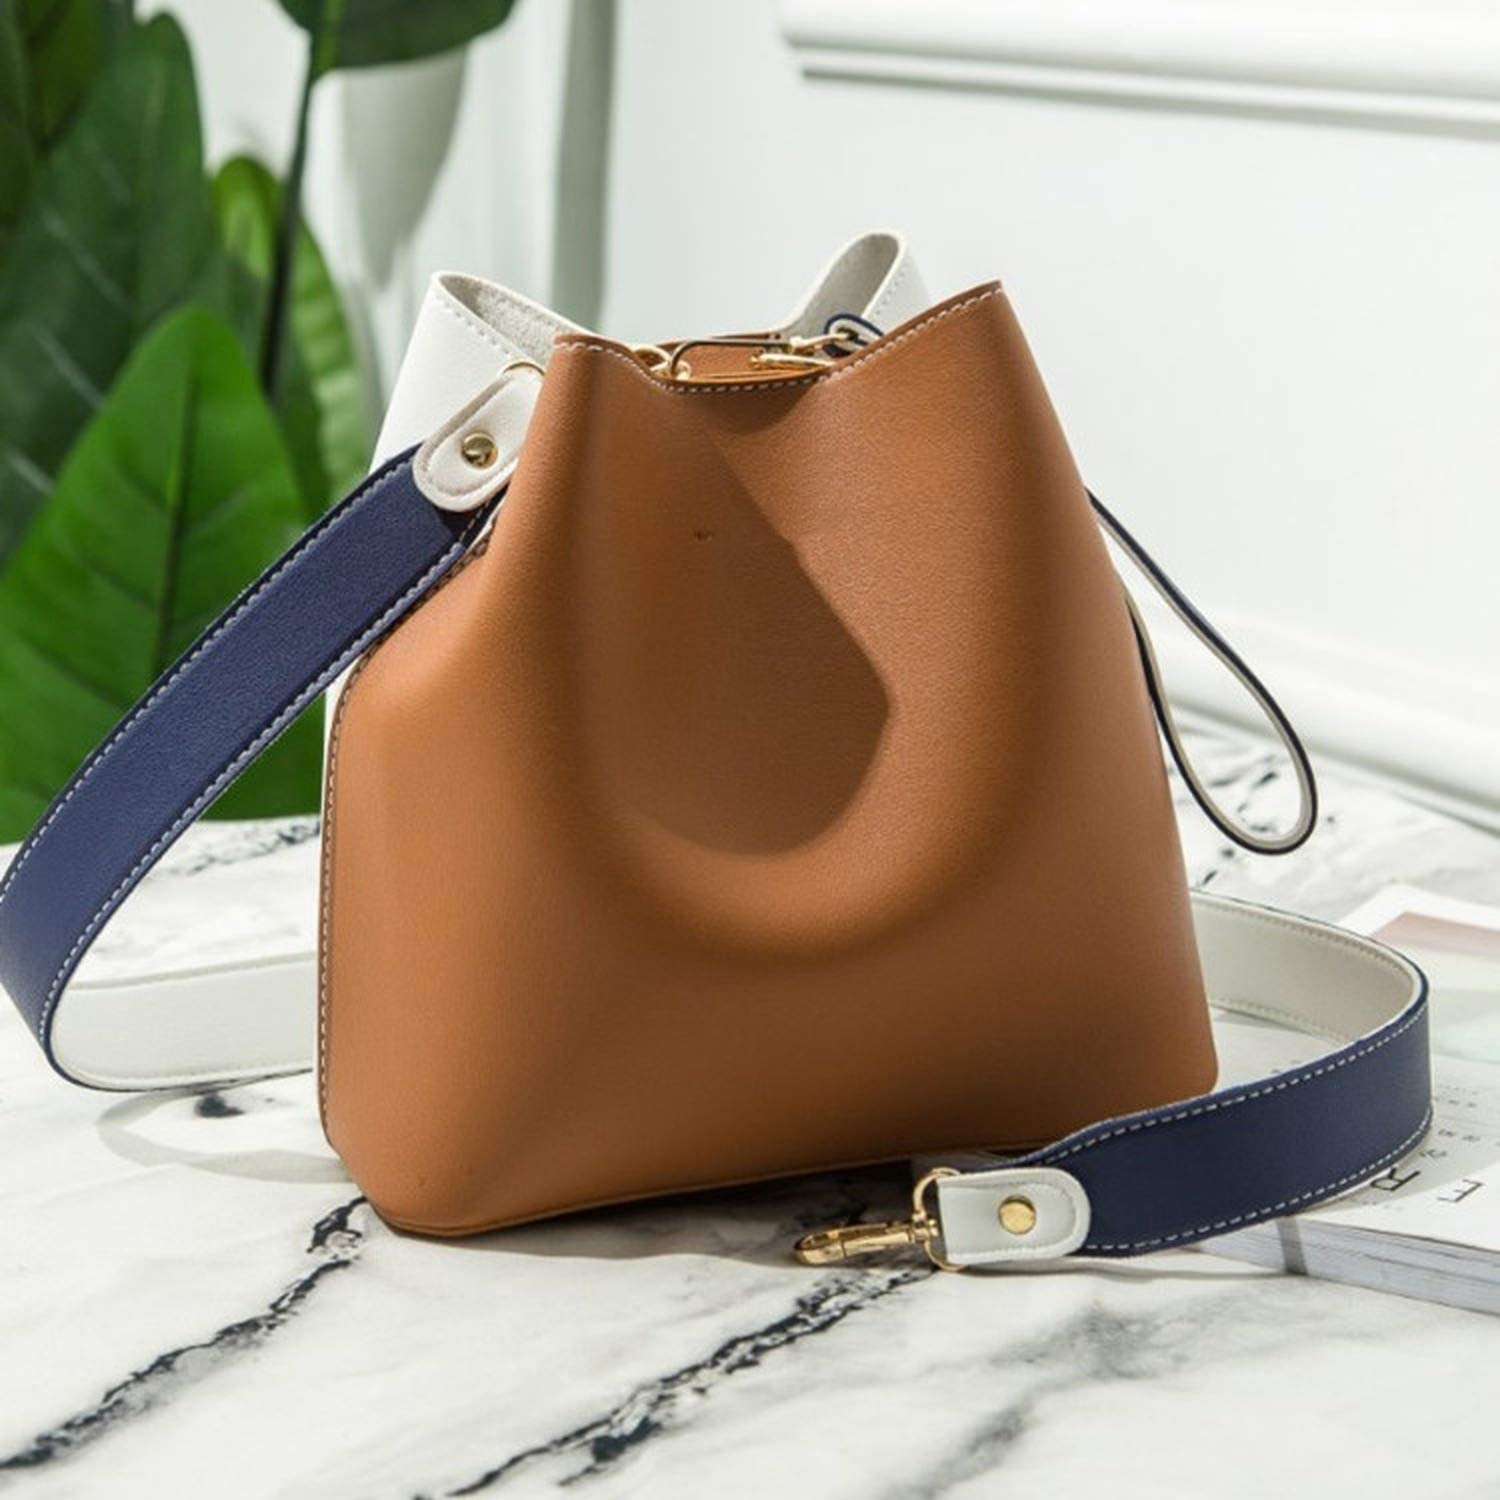 Women Bag Fashion New Contrast Stitching Bucket Bag PU Leather Shoulder Crossbody Bags Casual Simplicity Mini Tote Ladies